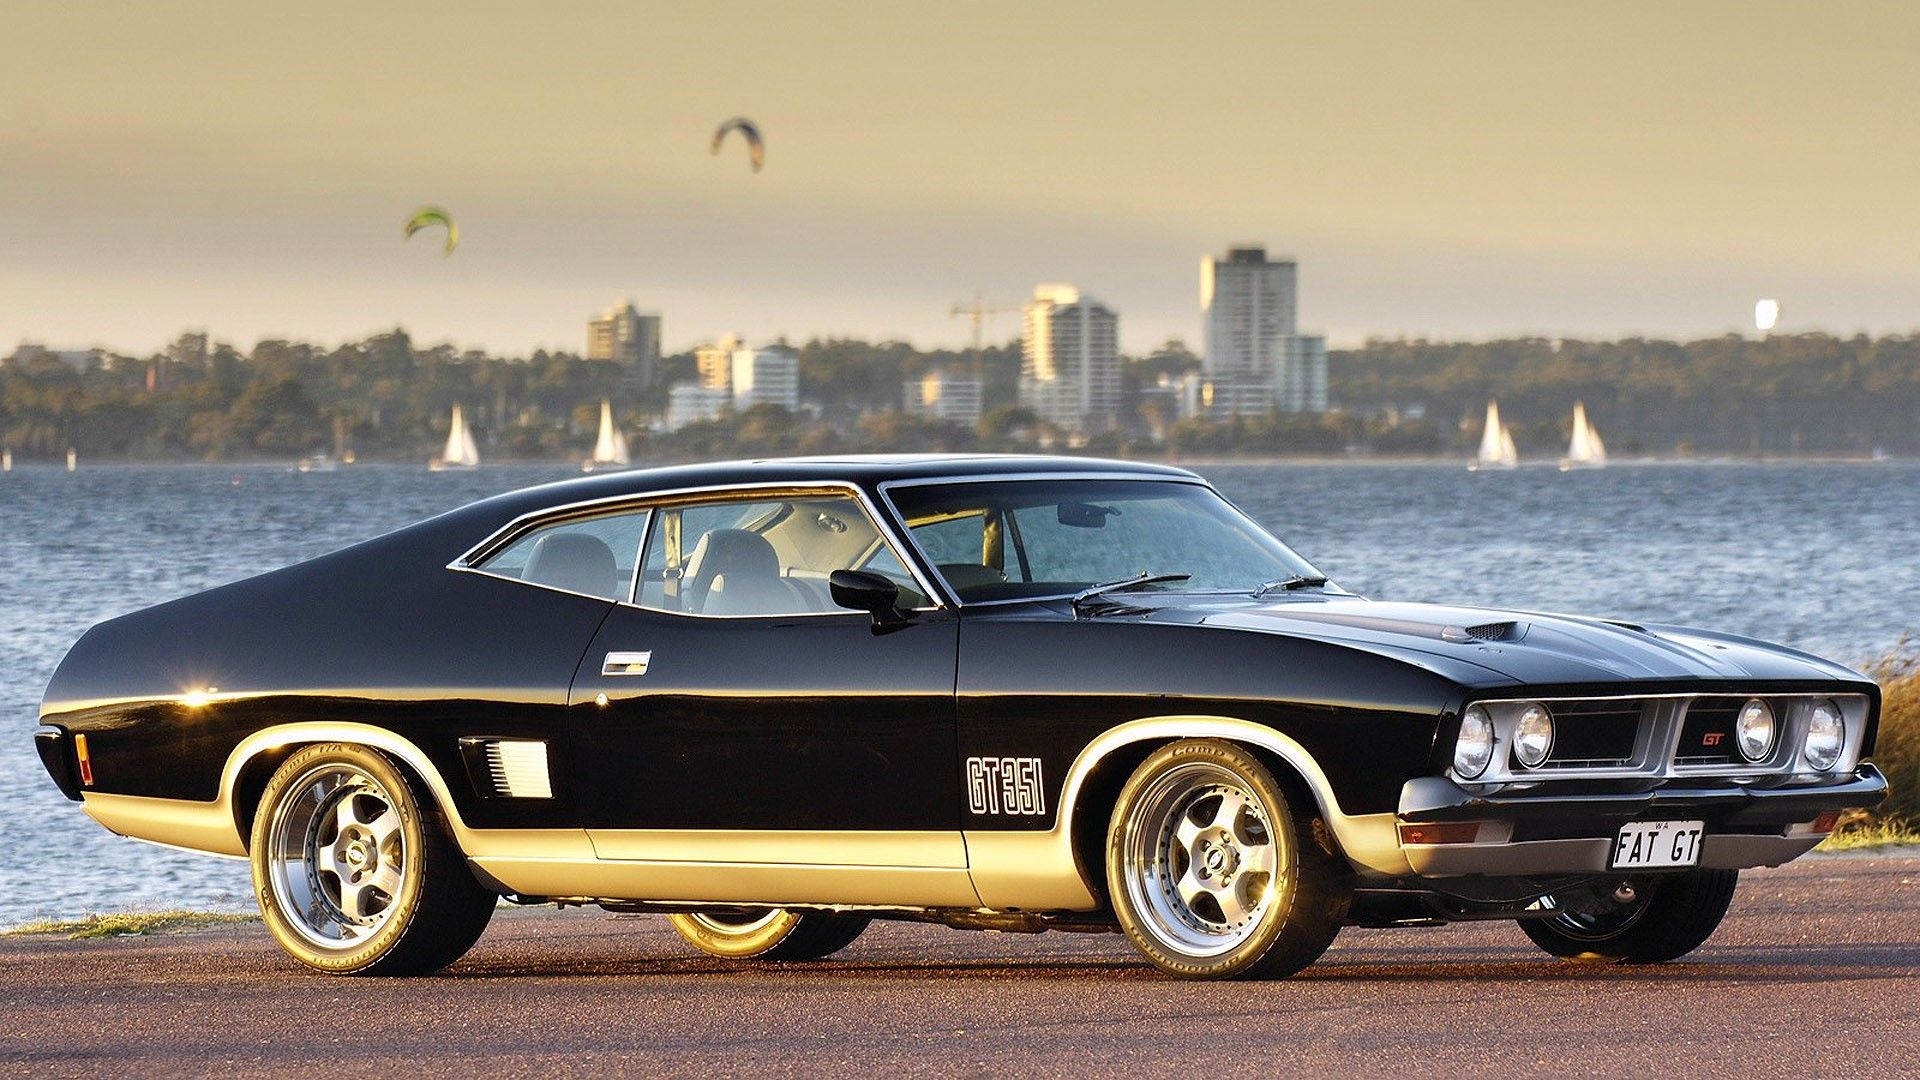 Ford Falcon Gt 351 With Images Australian Muscle Cars Ford